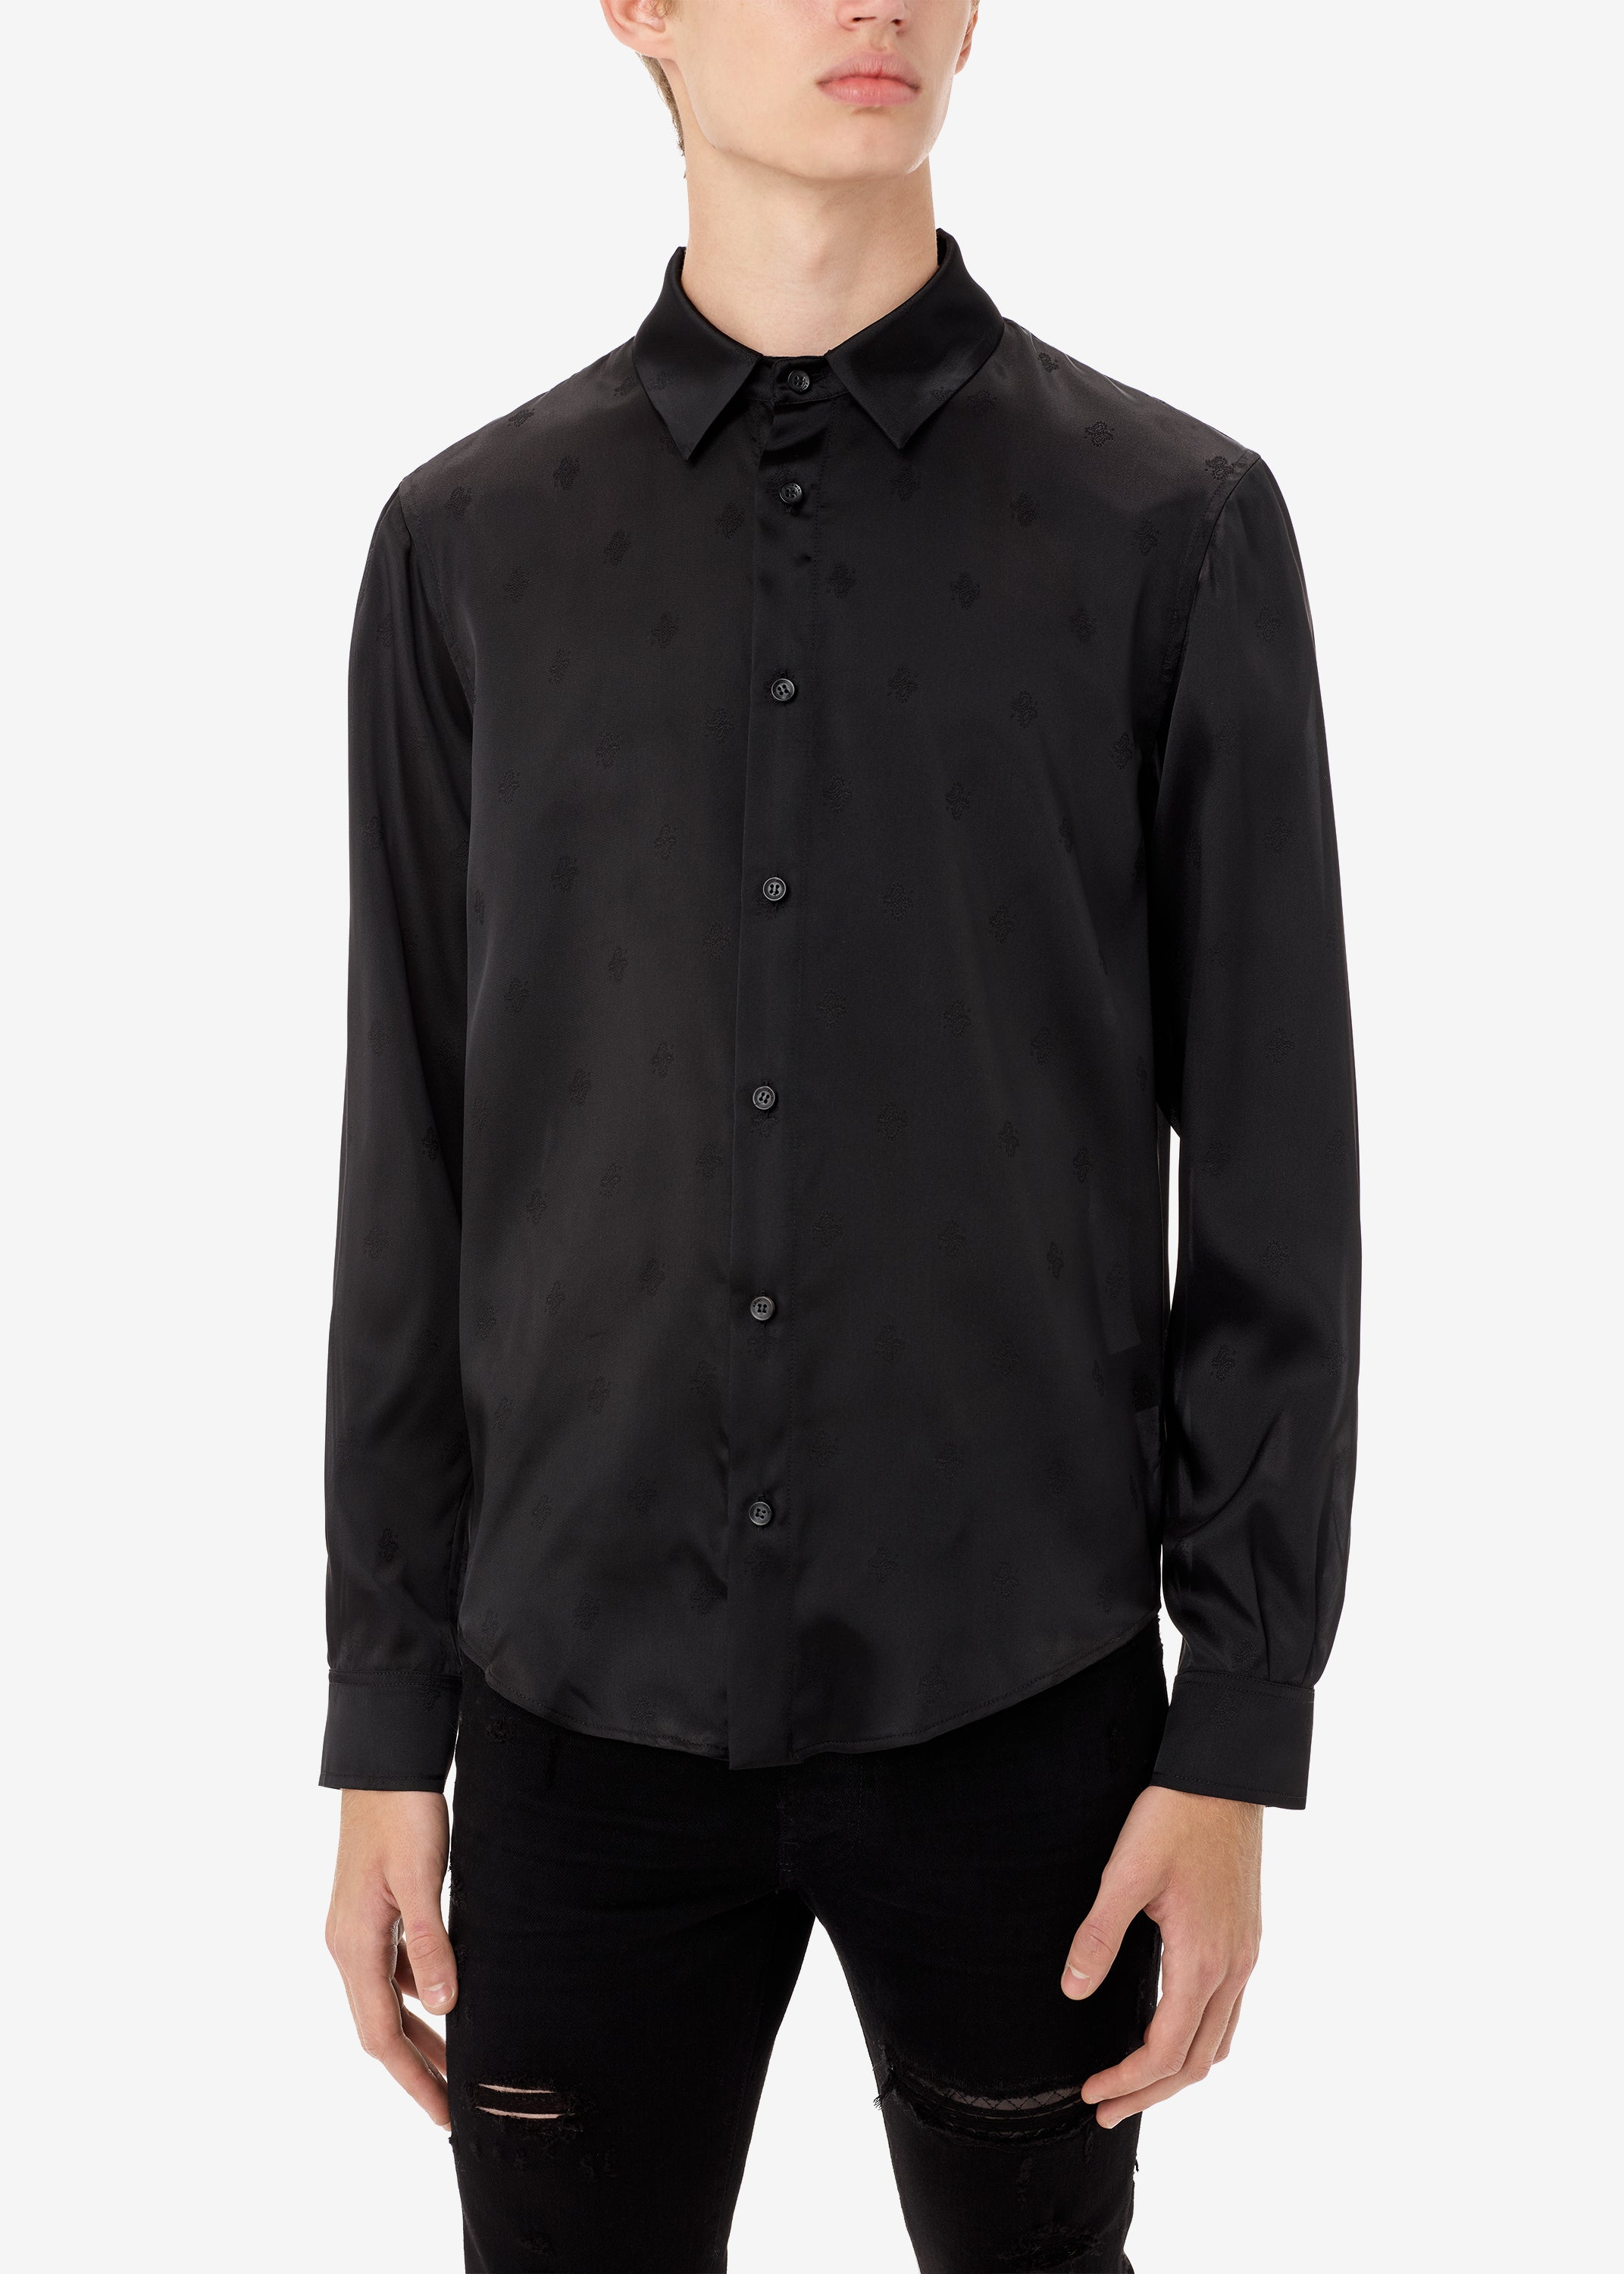 exclusive-micro-paisley-shirt-black-image-5